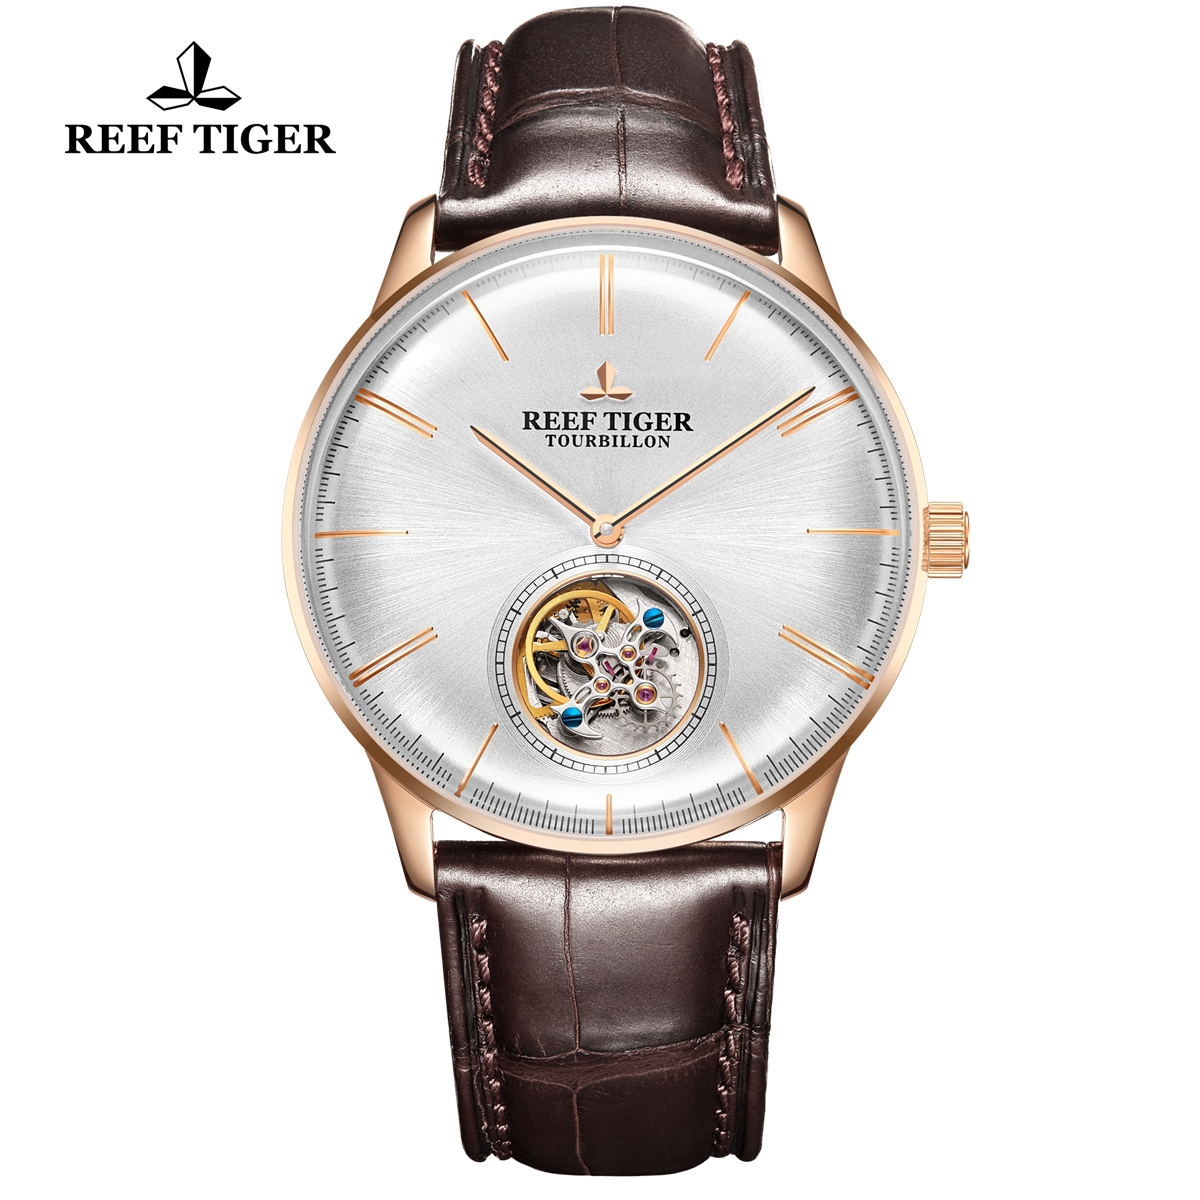 Reef Tiger Seattle Tourbillon Fashion Rose Gold White Dial Leather Strap Automatic Watch RGA1930-PWS